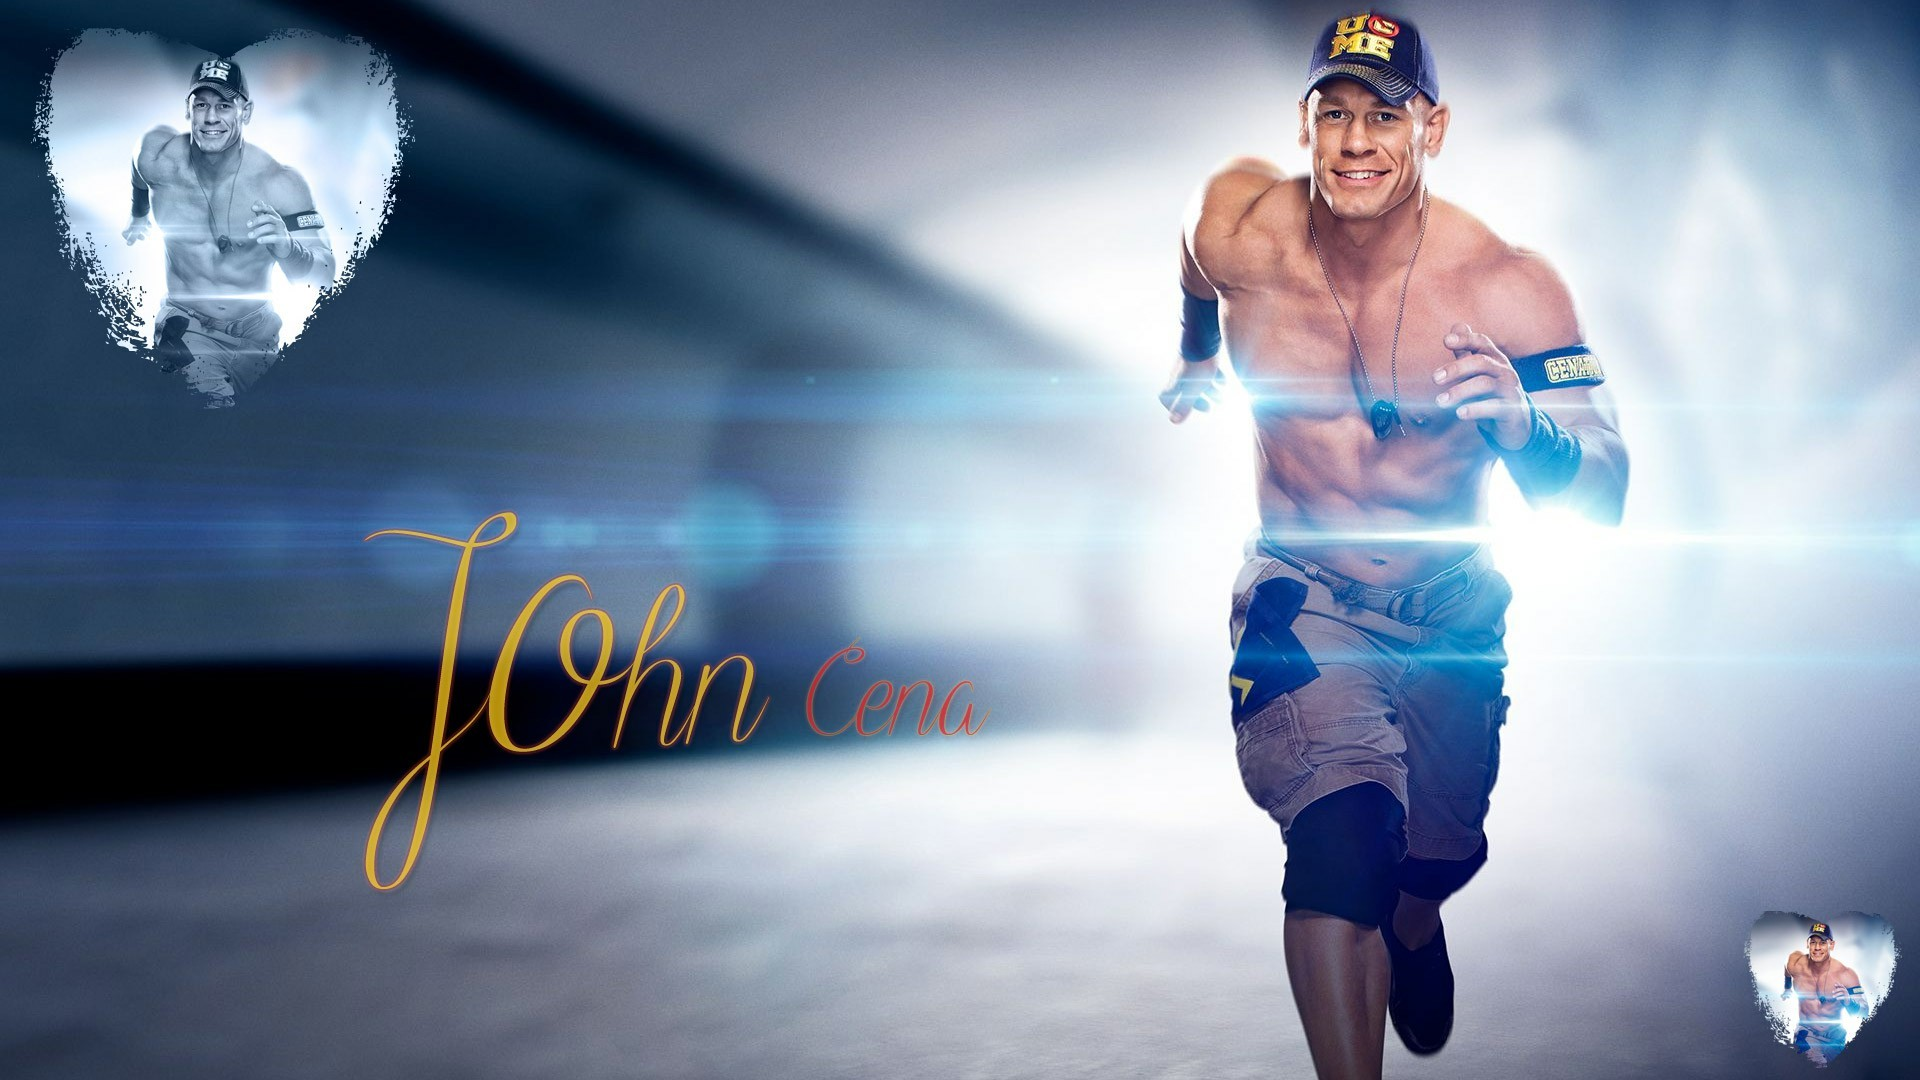 john cena full hd wallpapers (62+ background pictures)